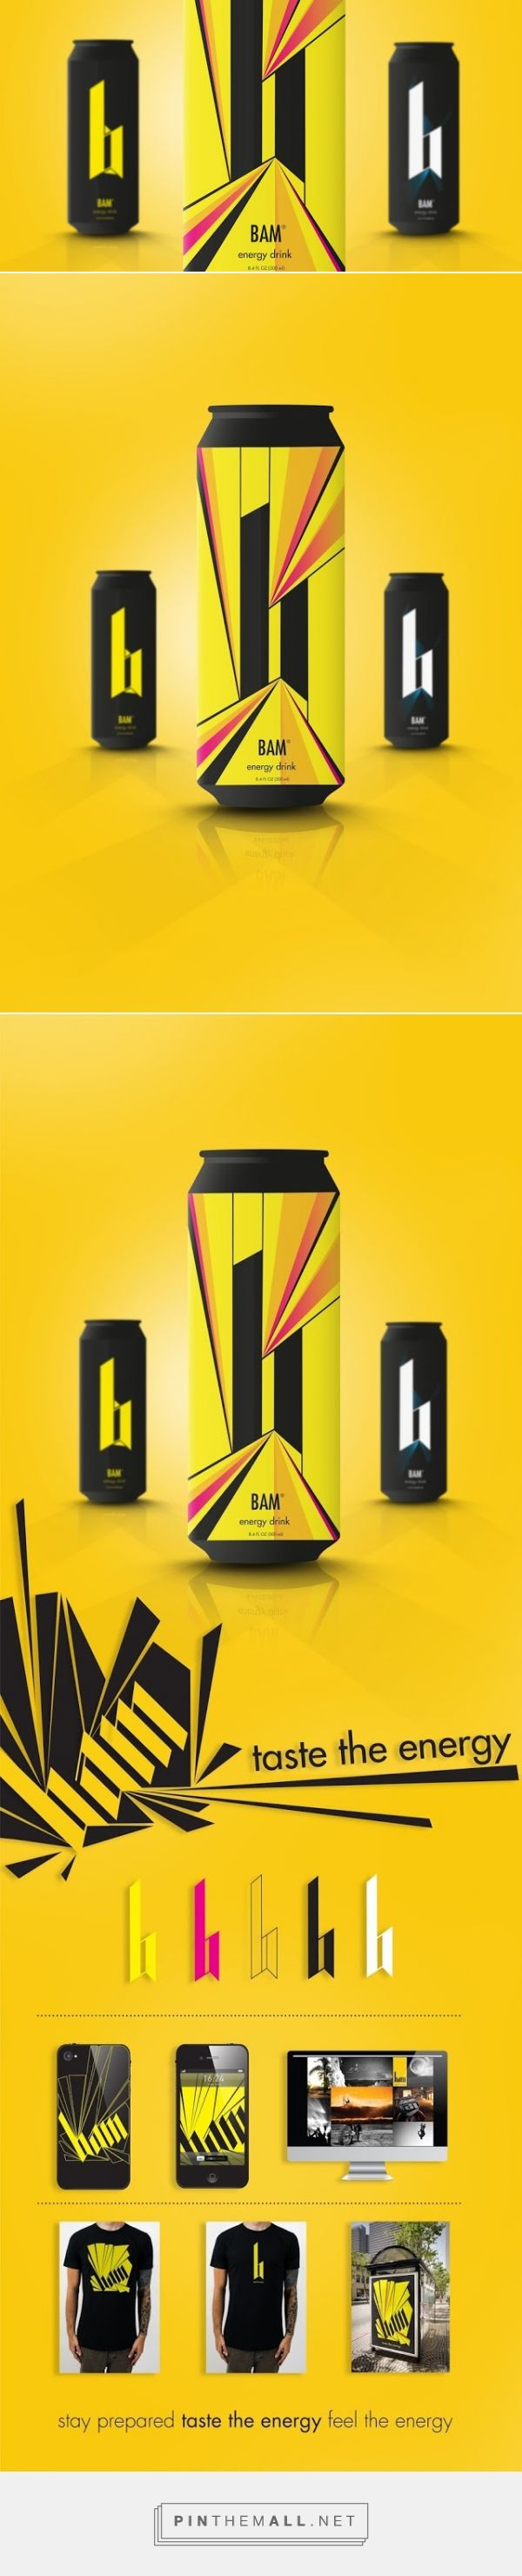 BAM Energy Drink (Student Project) Bottle design